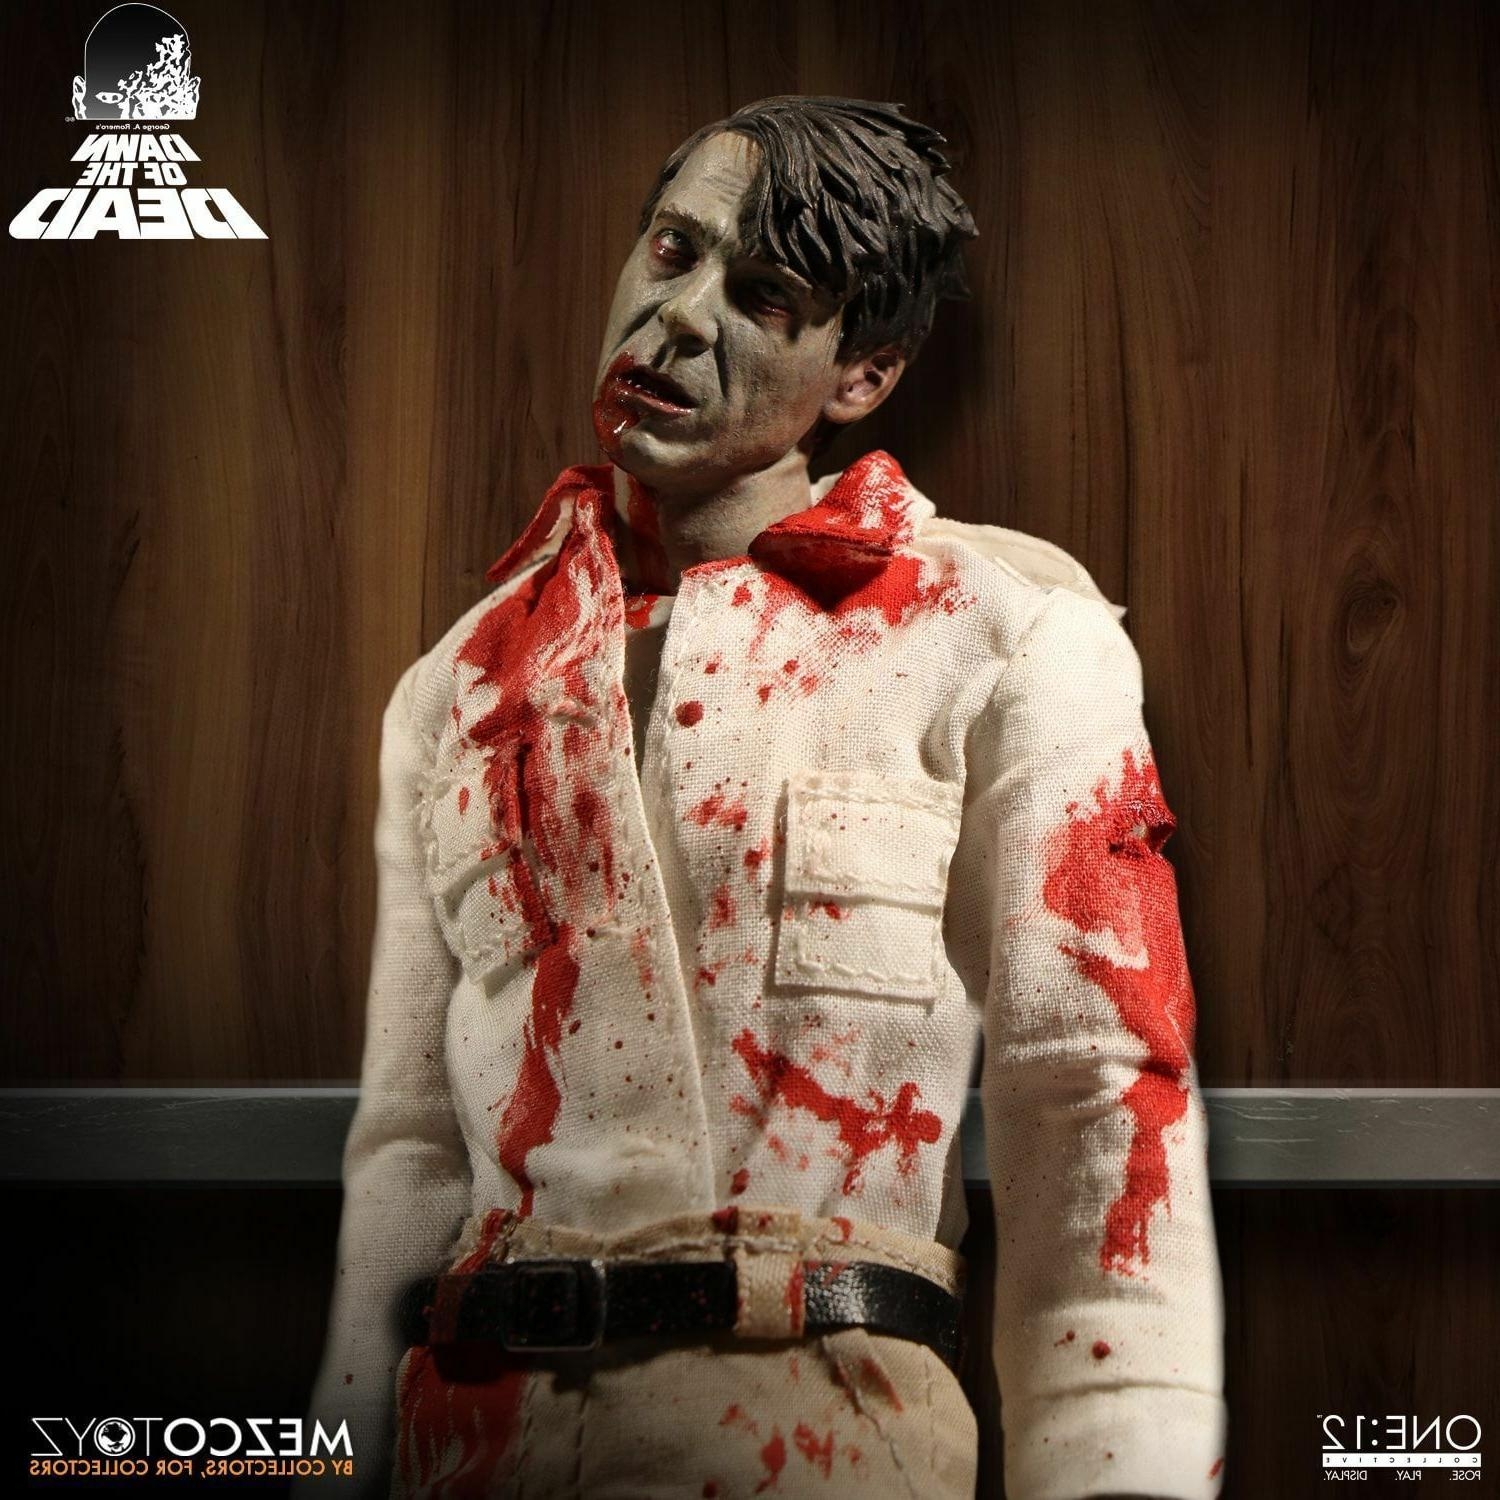 MEZCO ONE 12 COLLECTIVE Dawn of the Dead ZOMBIE Set IN STOCK FREE SHIPPING NEW